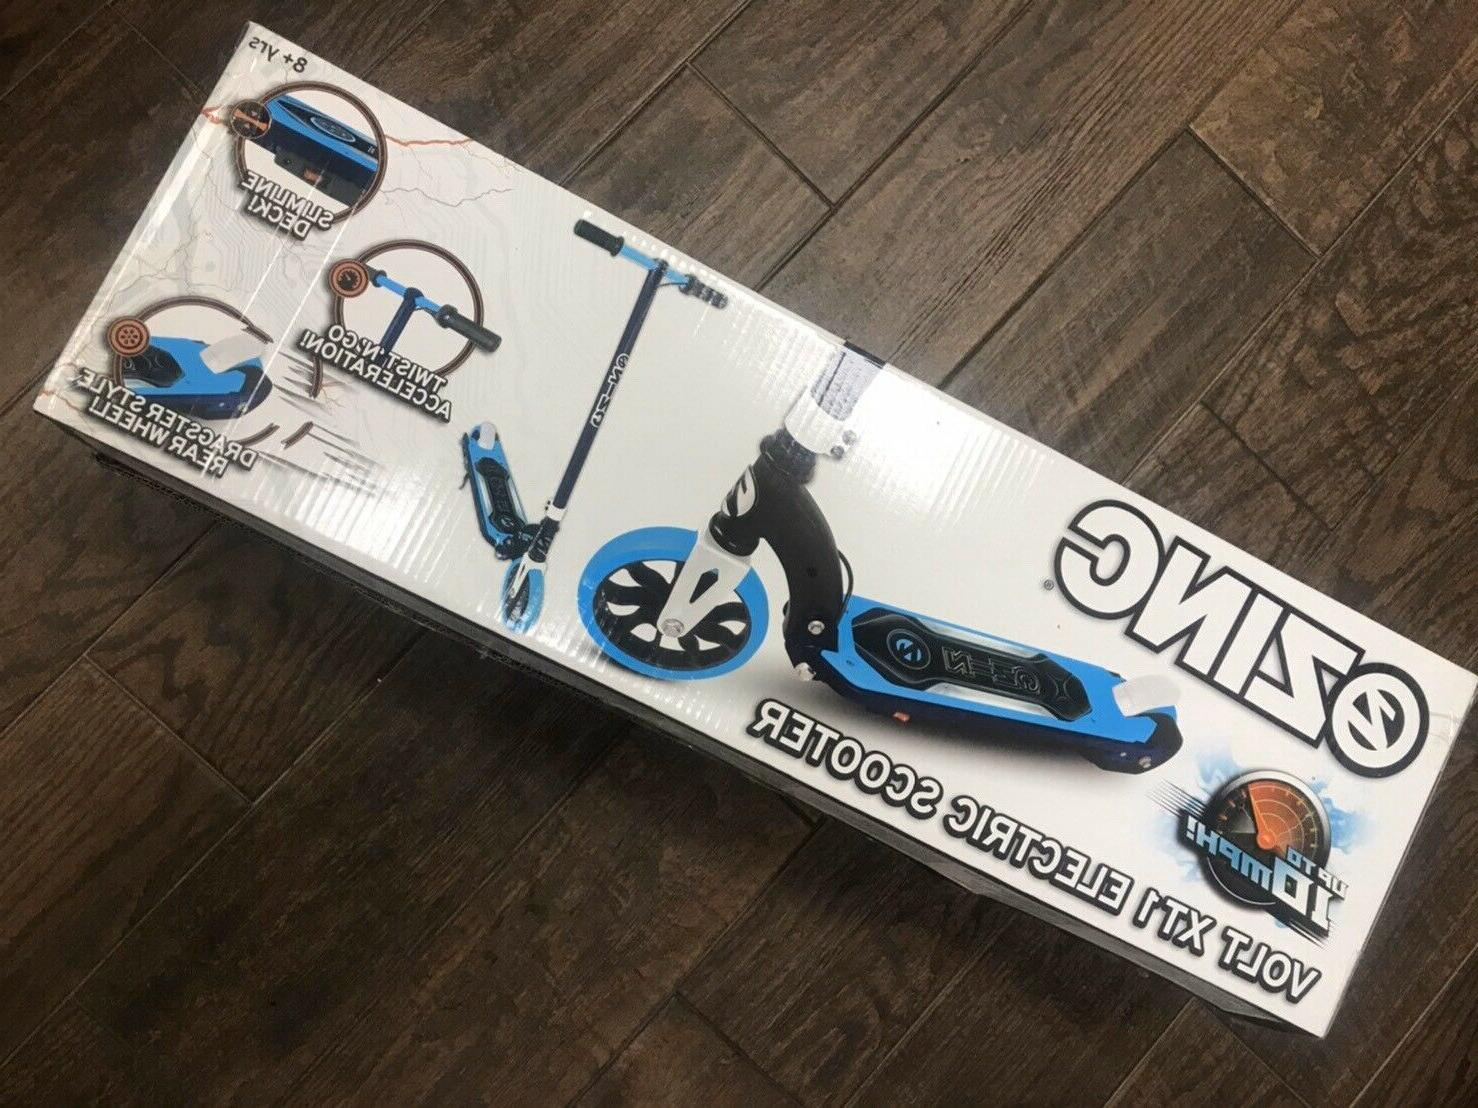 volt xt1 teenage electric scooter chain drive